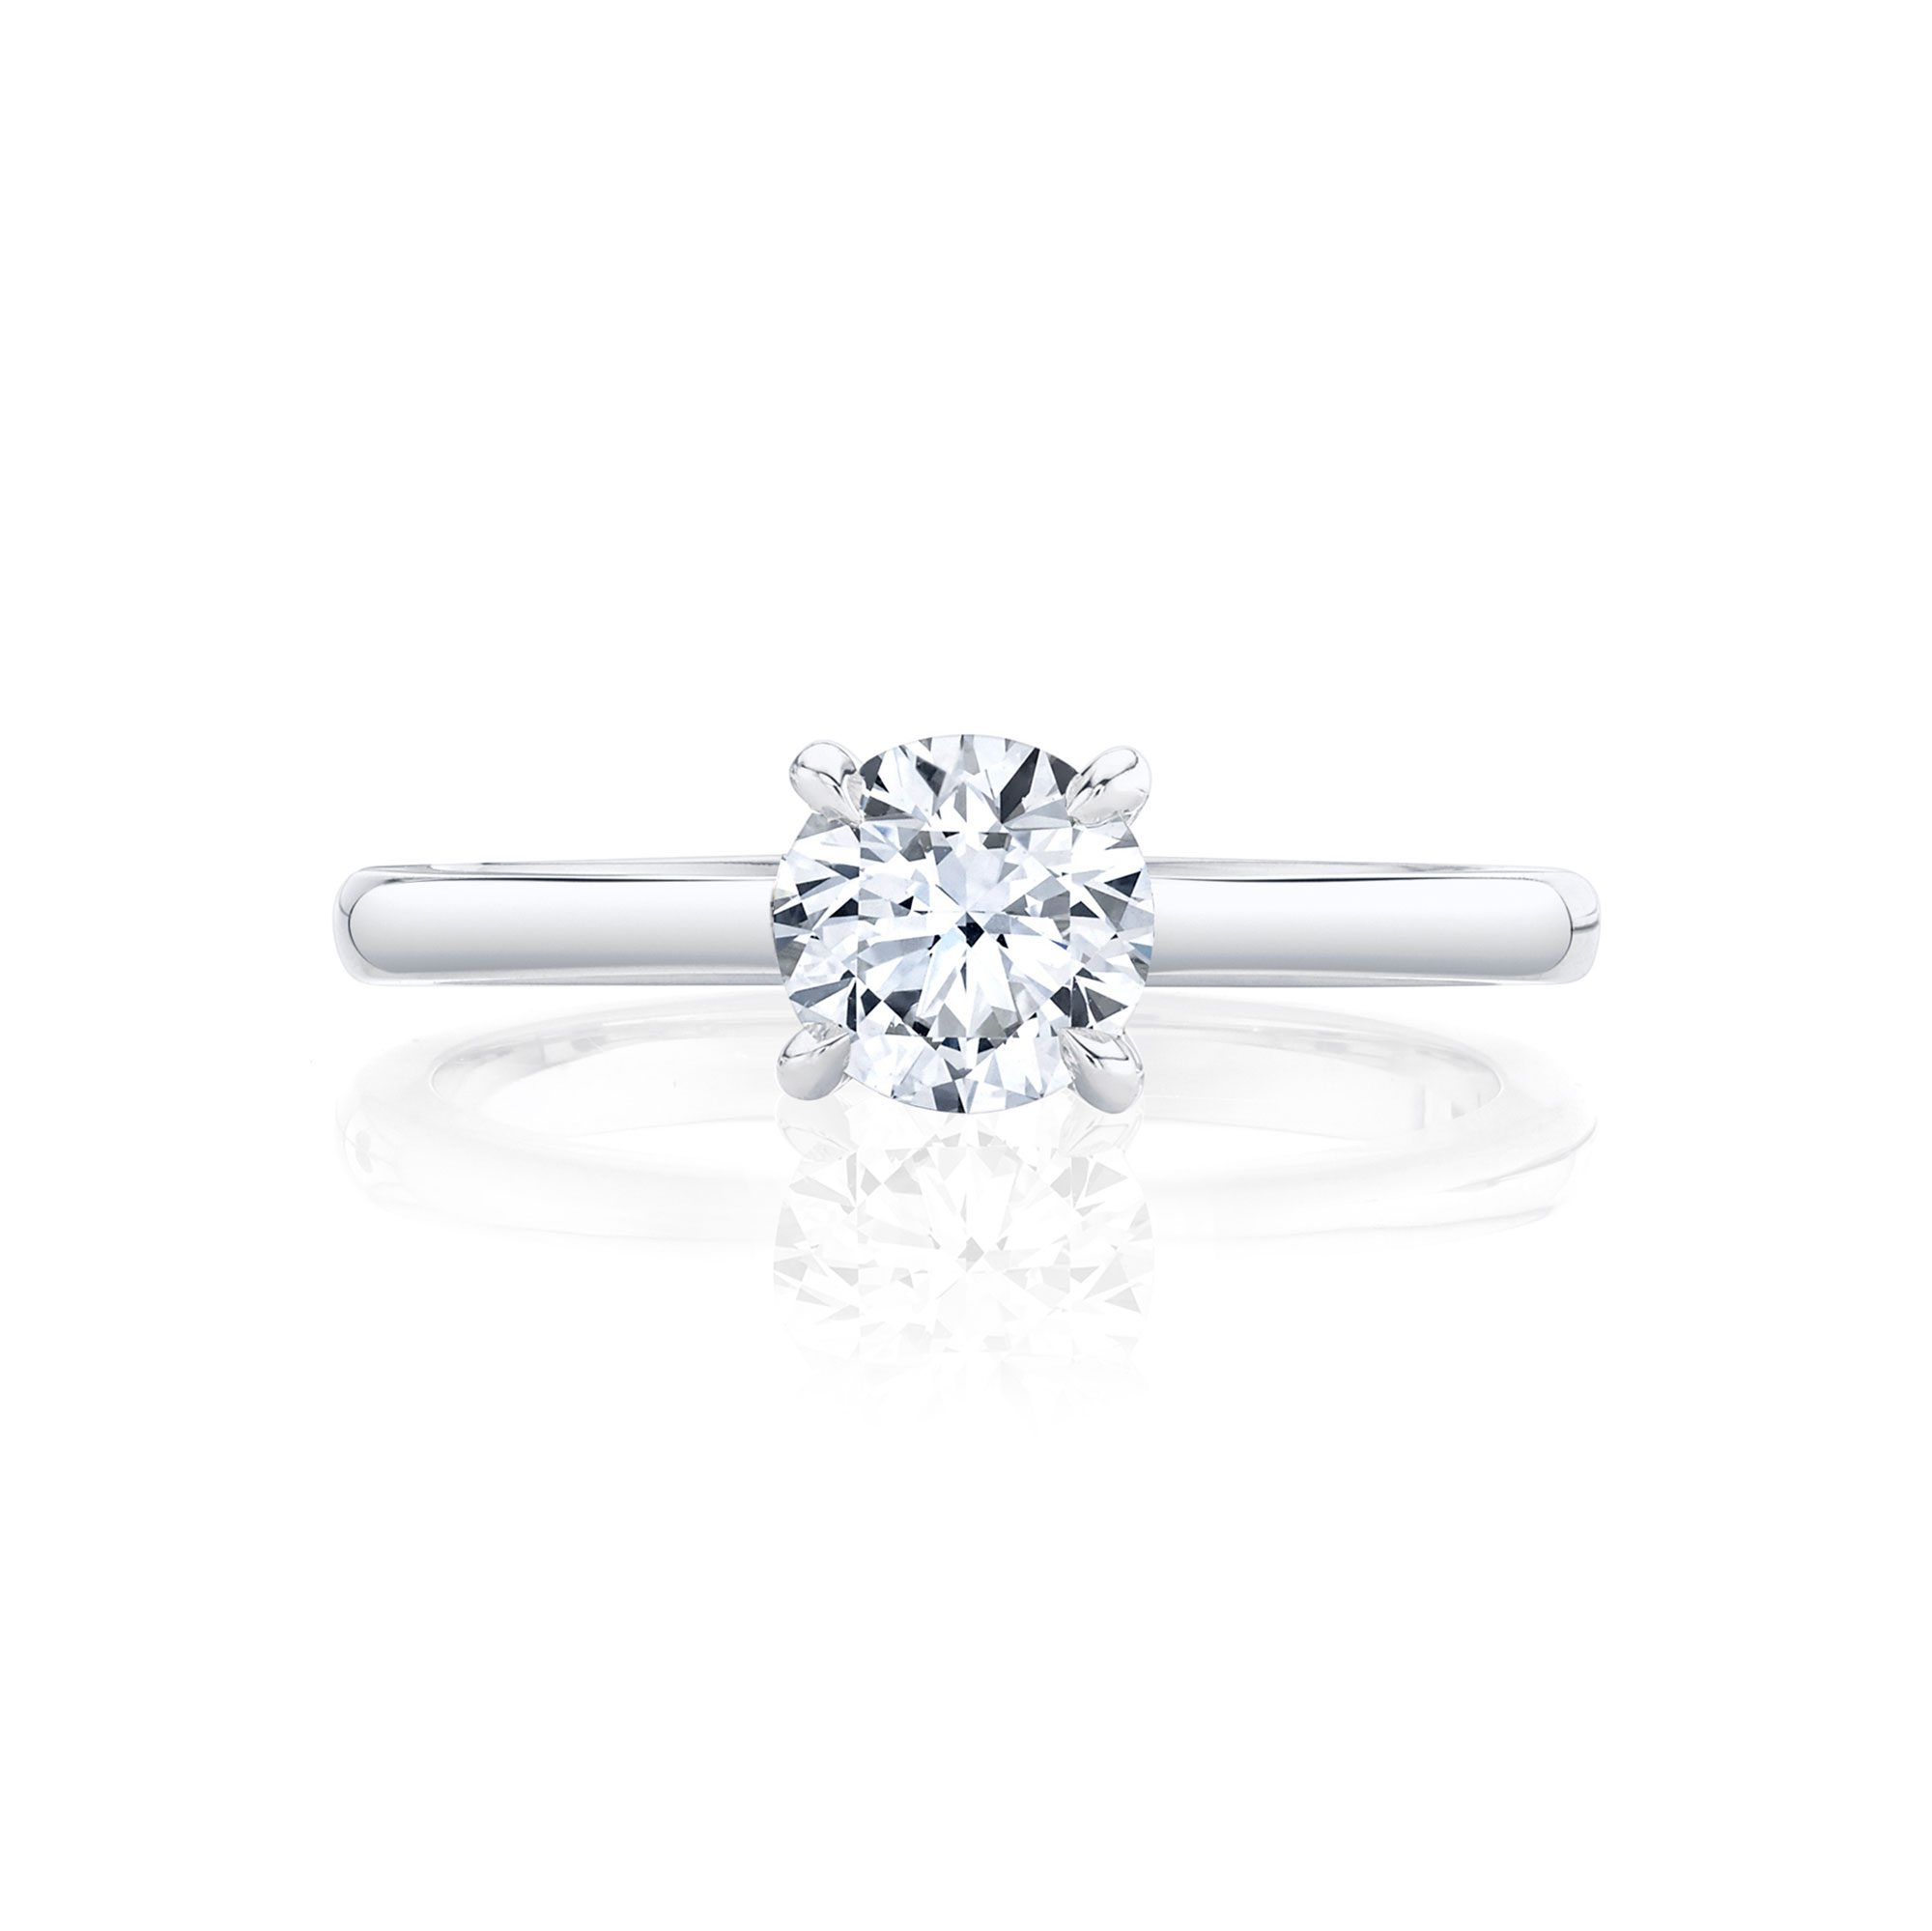 Colette Round Brilliant Solitaire Engagement Ring with a sold band in 18k White Gold Front View by Oui by Jean Dousset